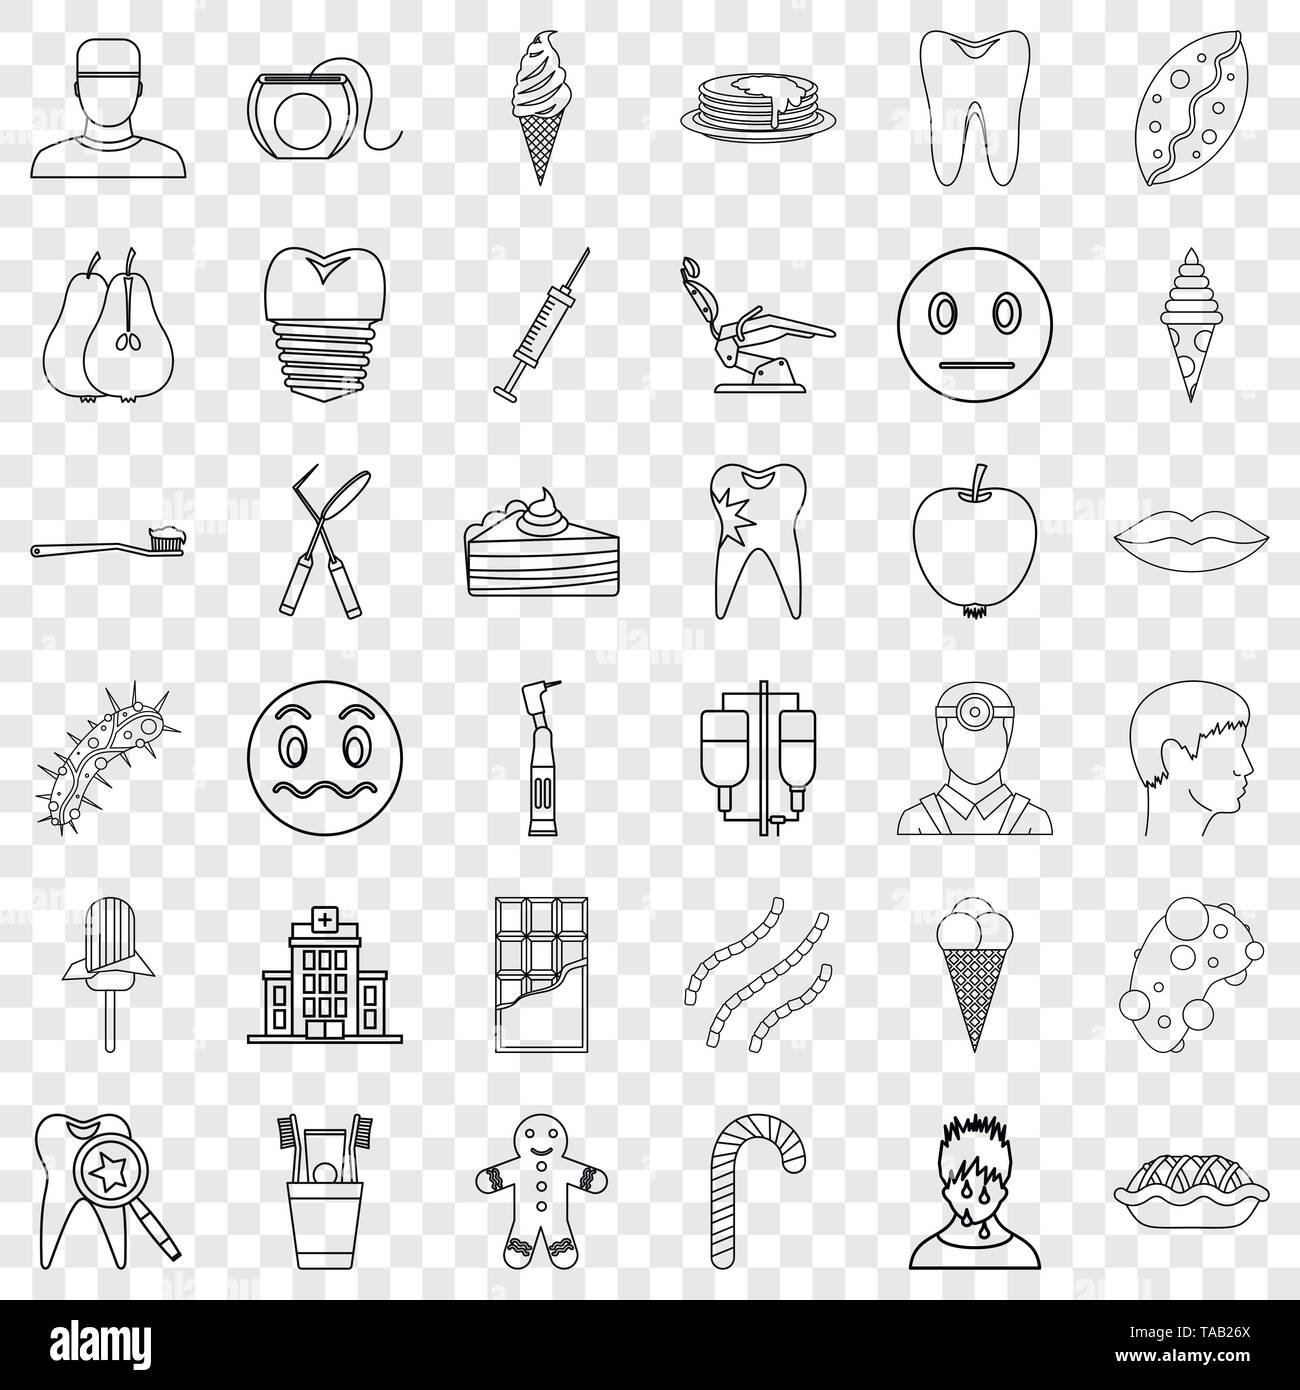 Dentist icons set, outline style - Stock Image